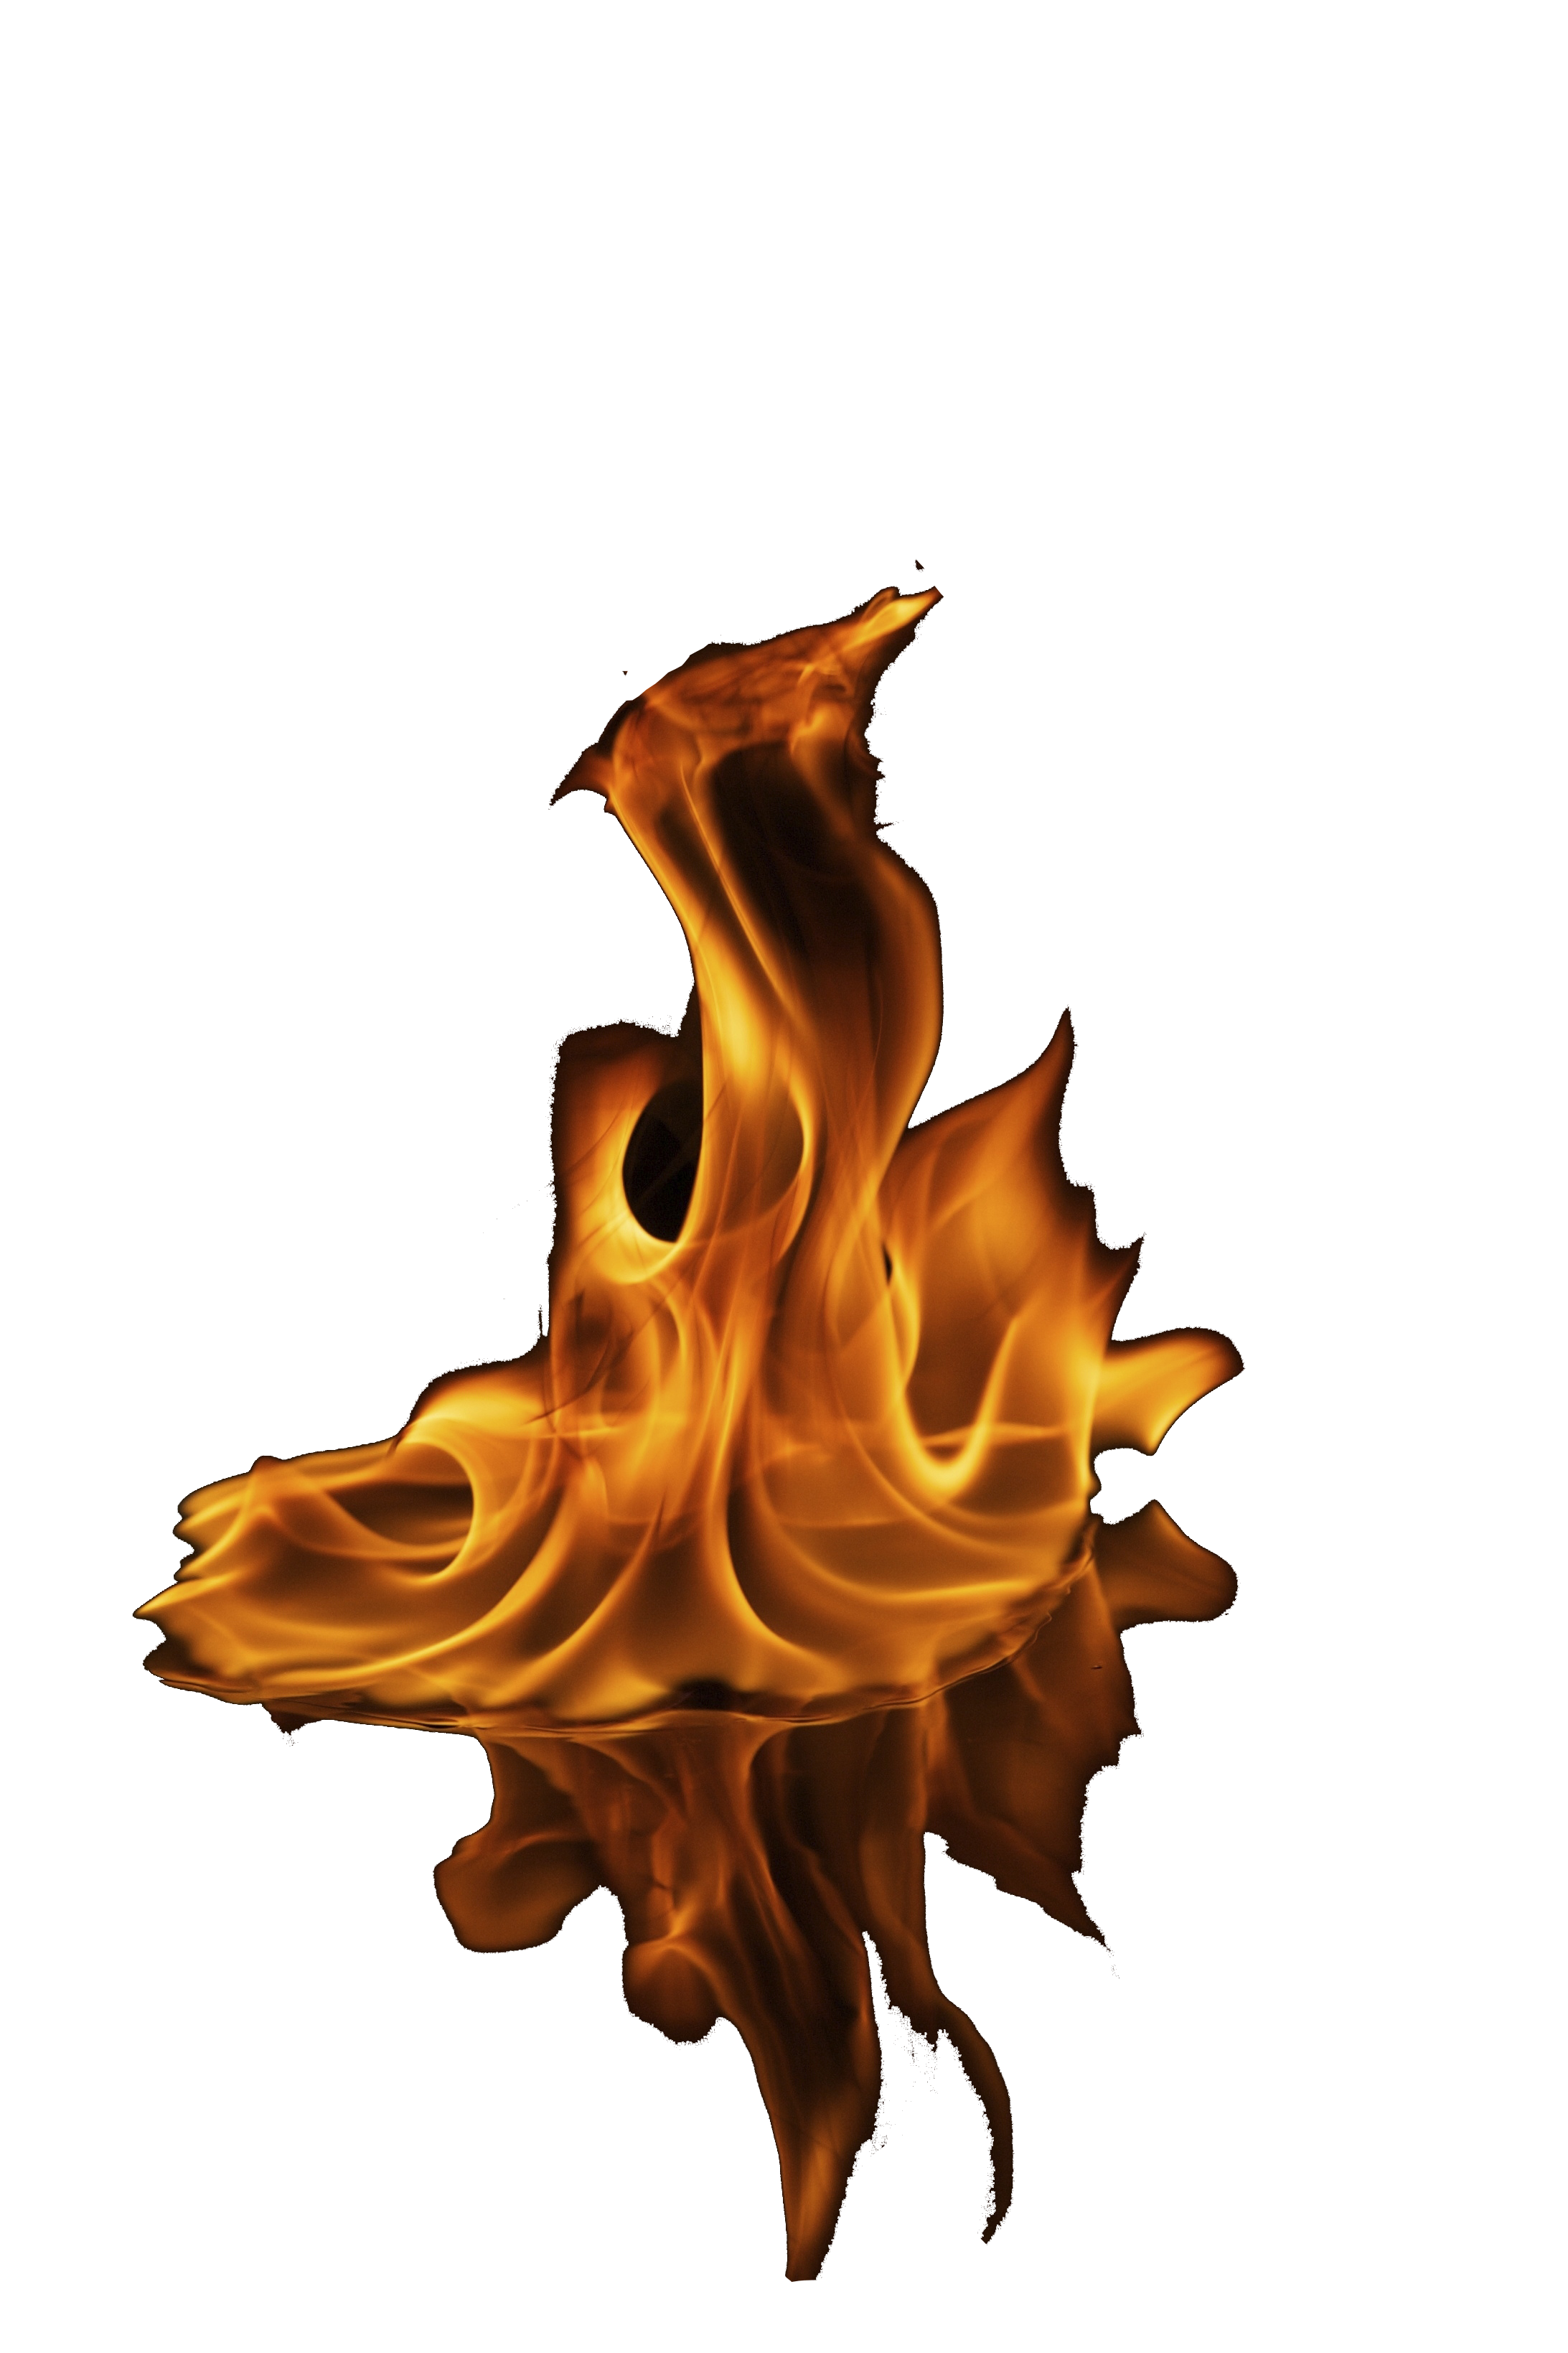 Backgrounds png hd. Fire background